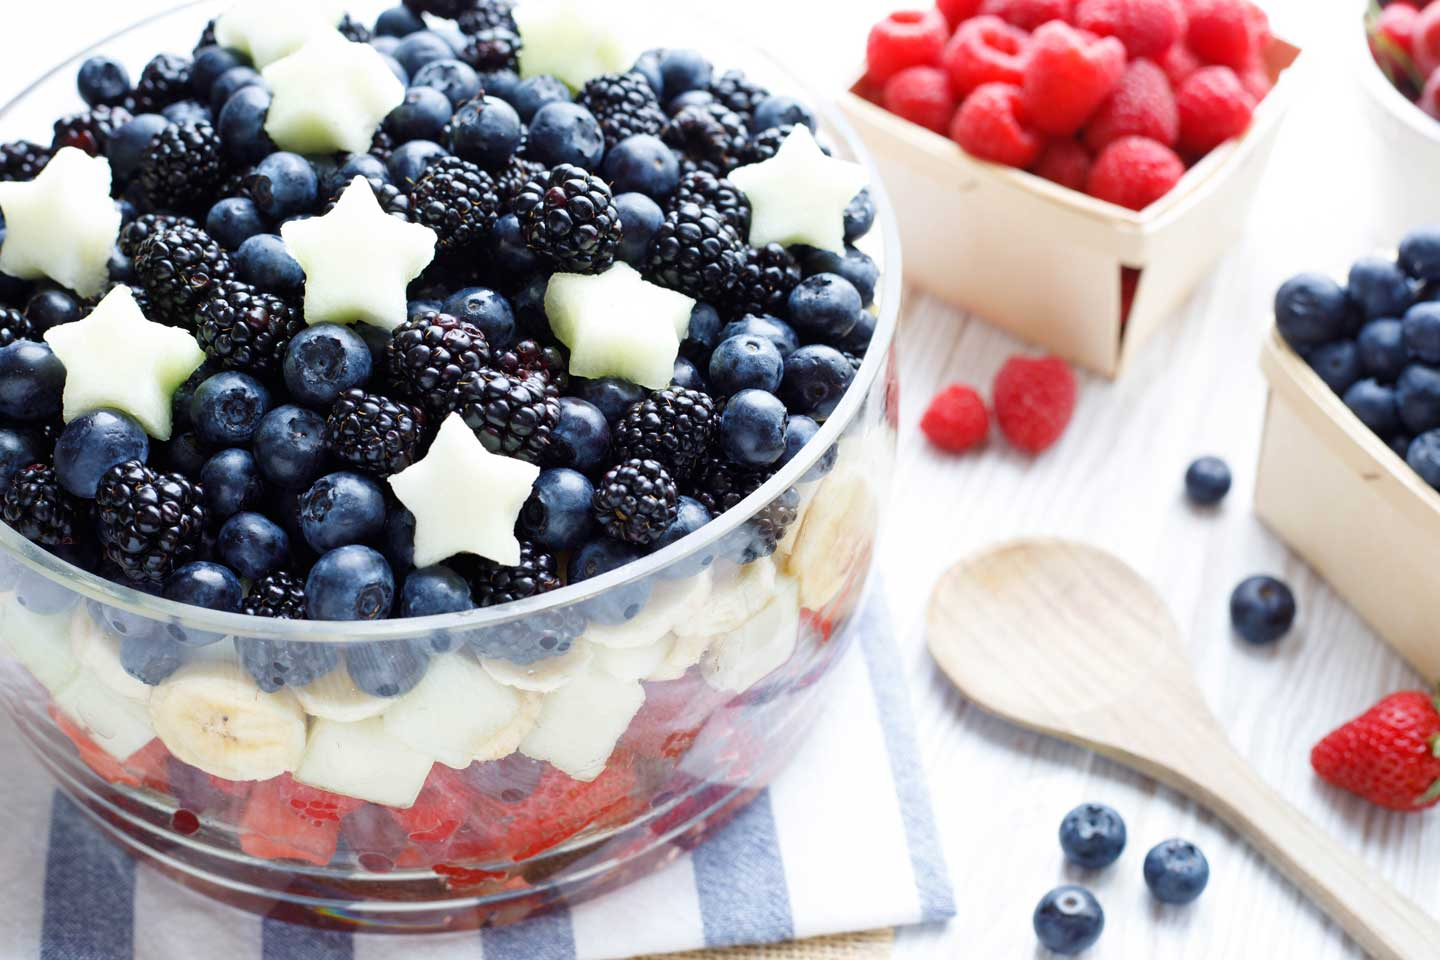 Layered fruit salad topped with white melon stars, surrounded by red and blue fruits and wooden spoon